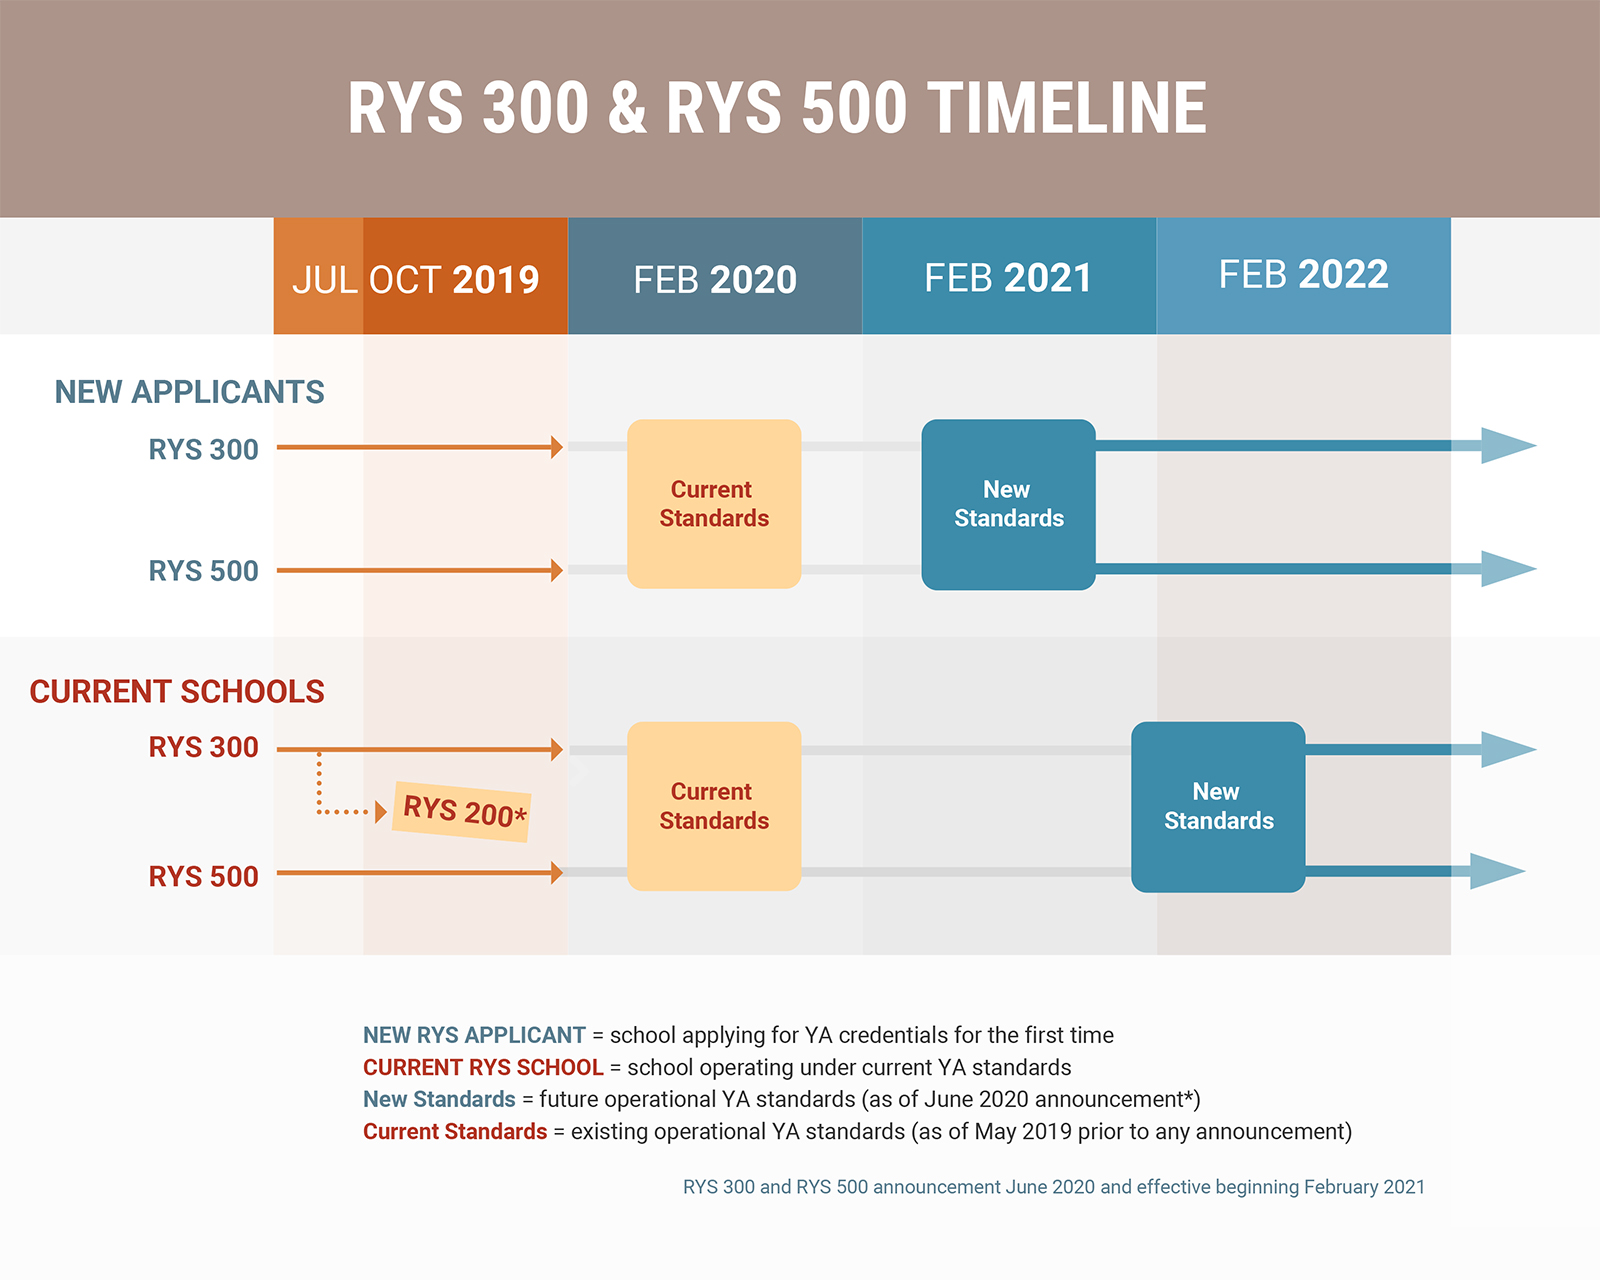 RYS 300 and RYS 500 Initial Outcomes